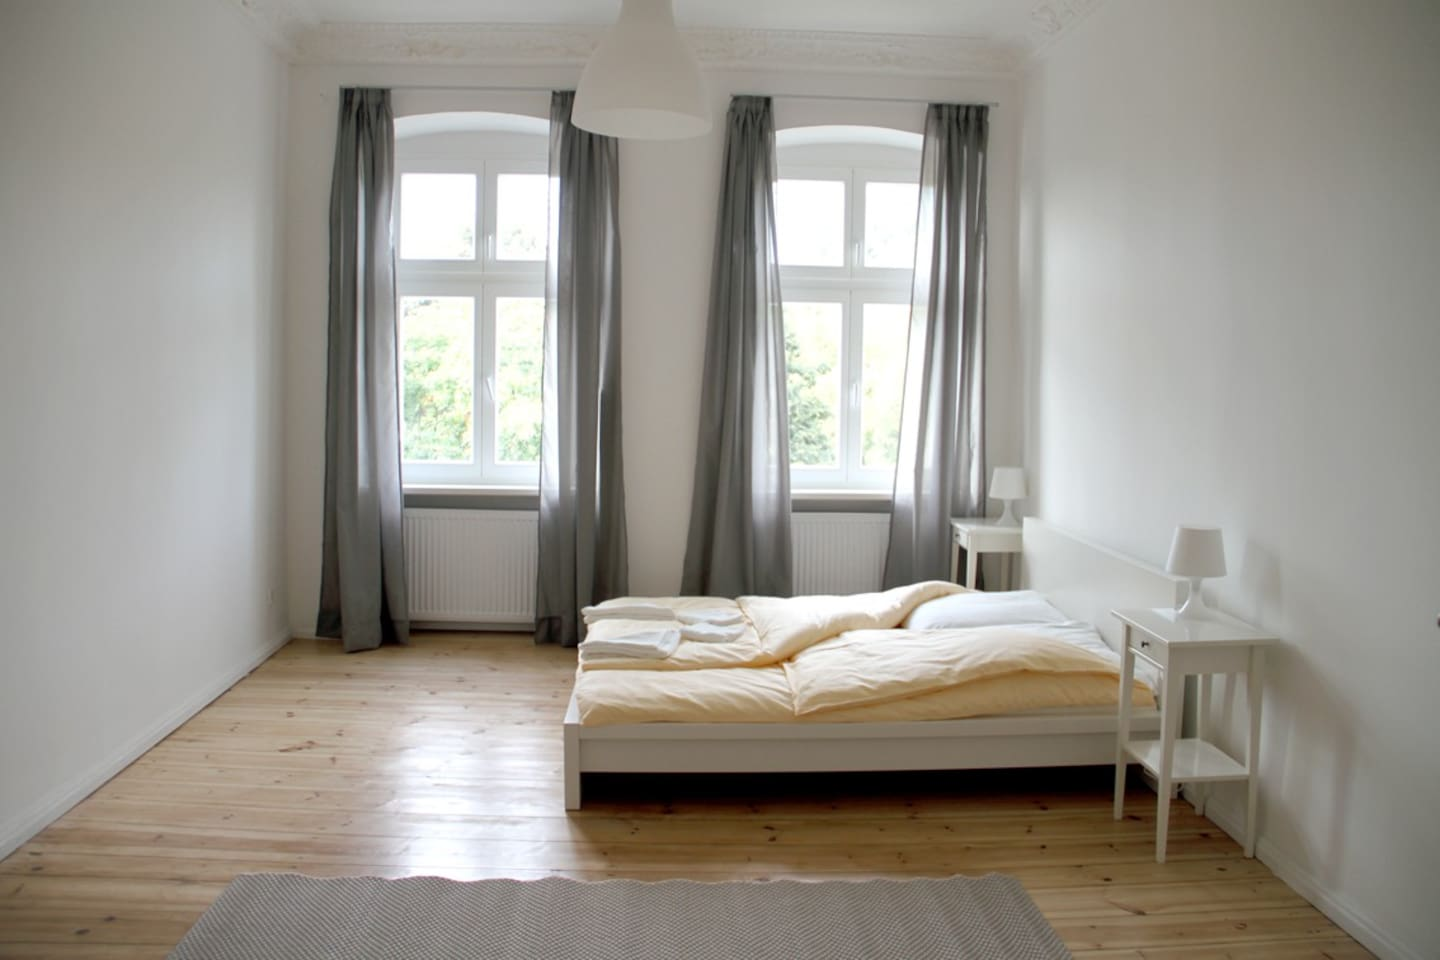 4 Bedroom Apartment at Mauerpark